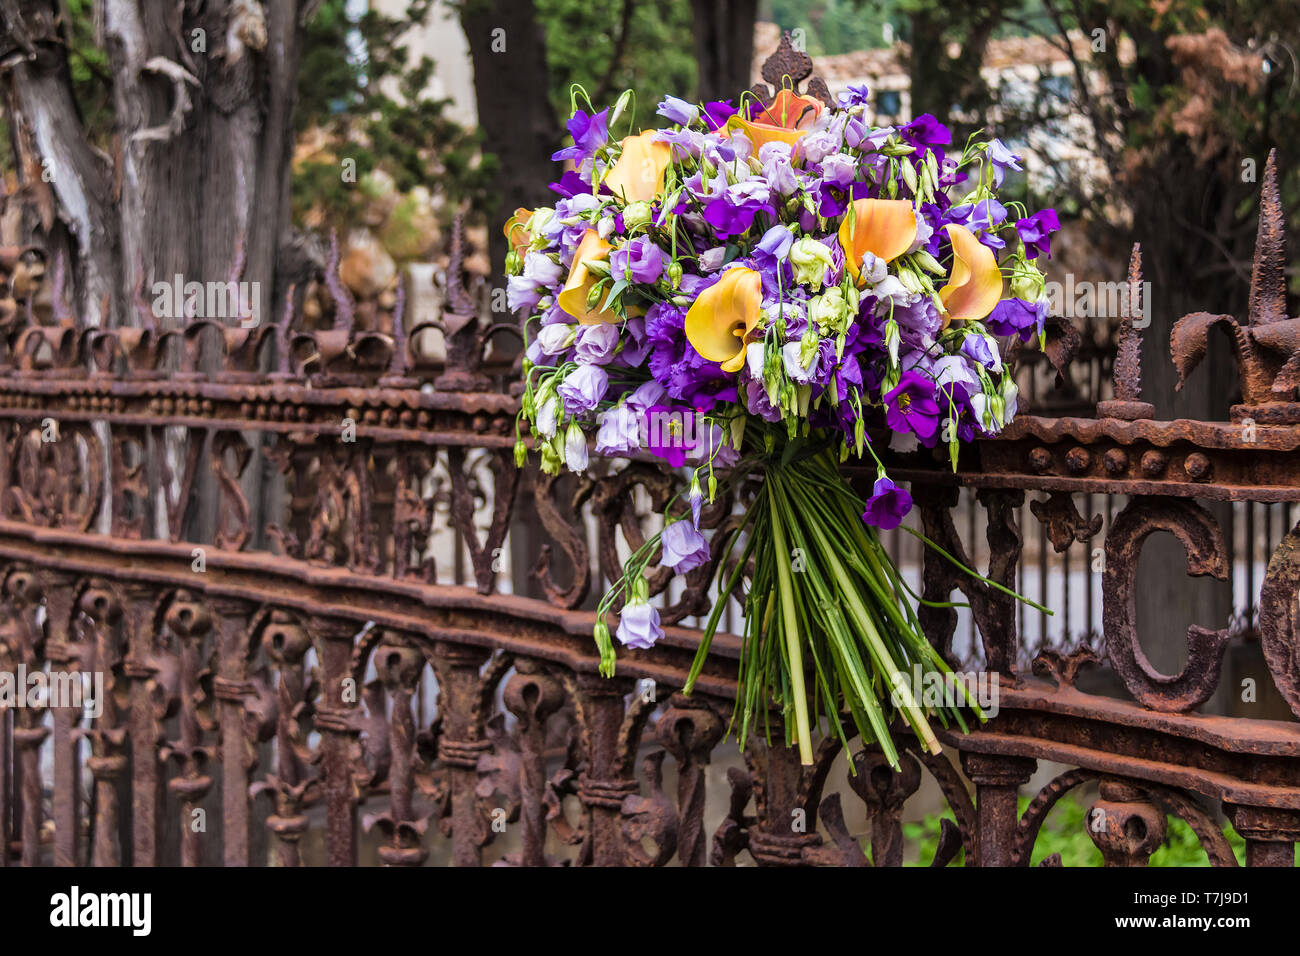 A bouquet of flowers on the wrought openwork fence on the Montjuic Cemetery closeup, Barcelona, Catalonia, Spain - Stock Image